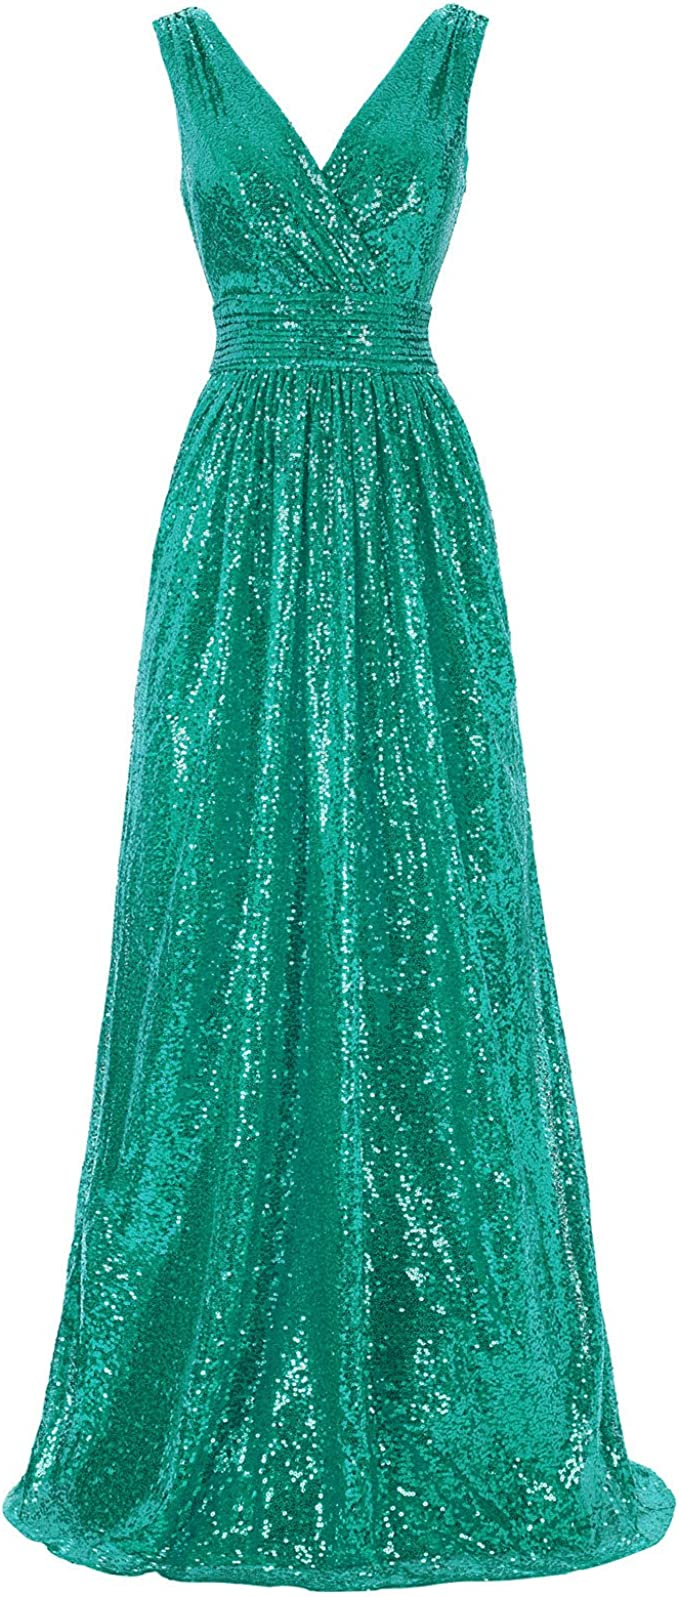 Women Sequin Gown Solid Sleeveless Halter Long Party Elegant Prom Dress Bridesmaid Dress